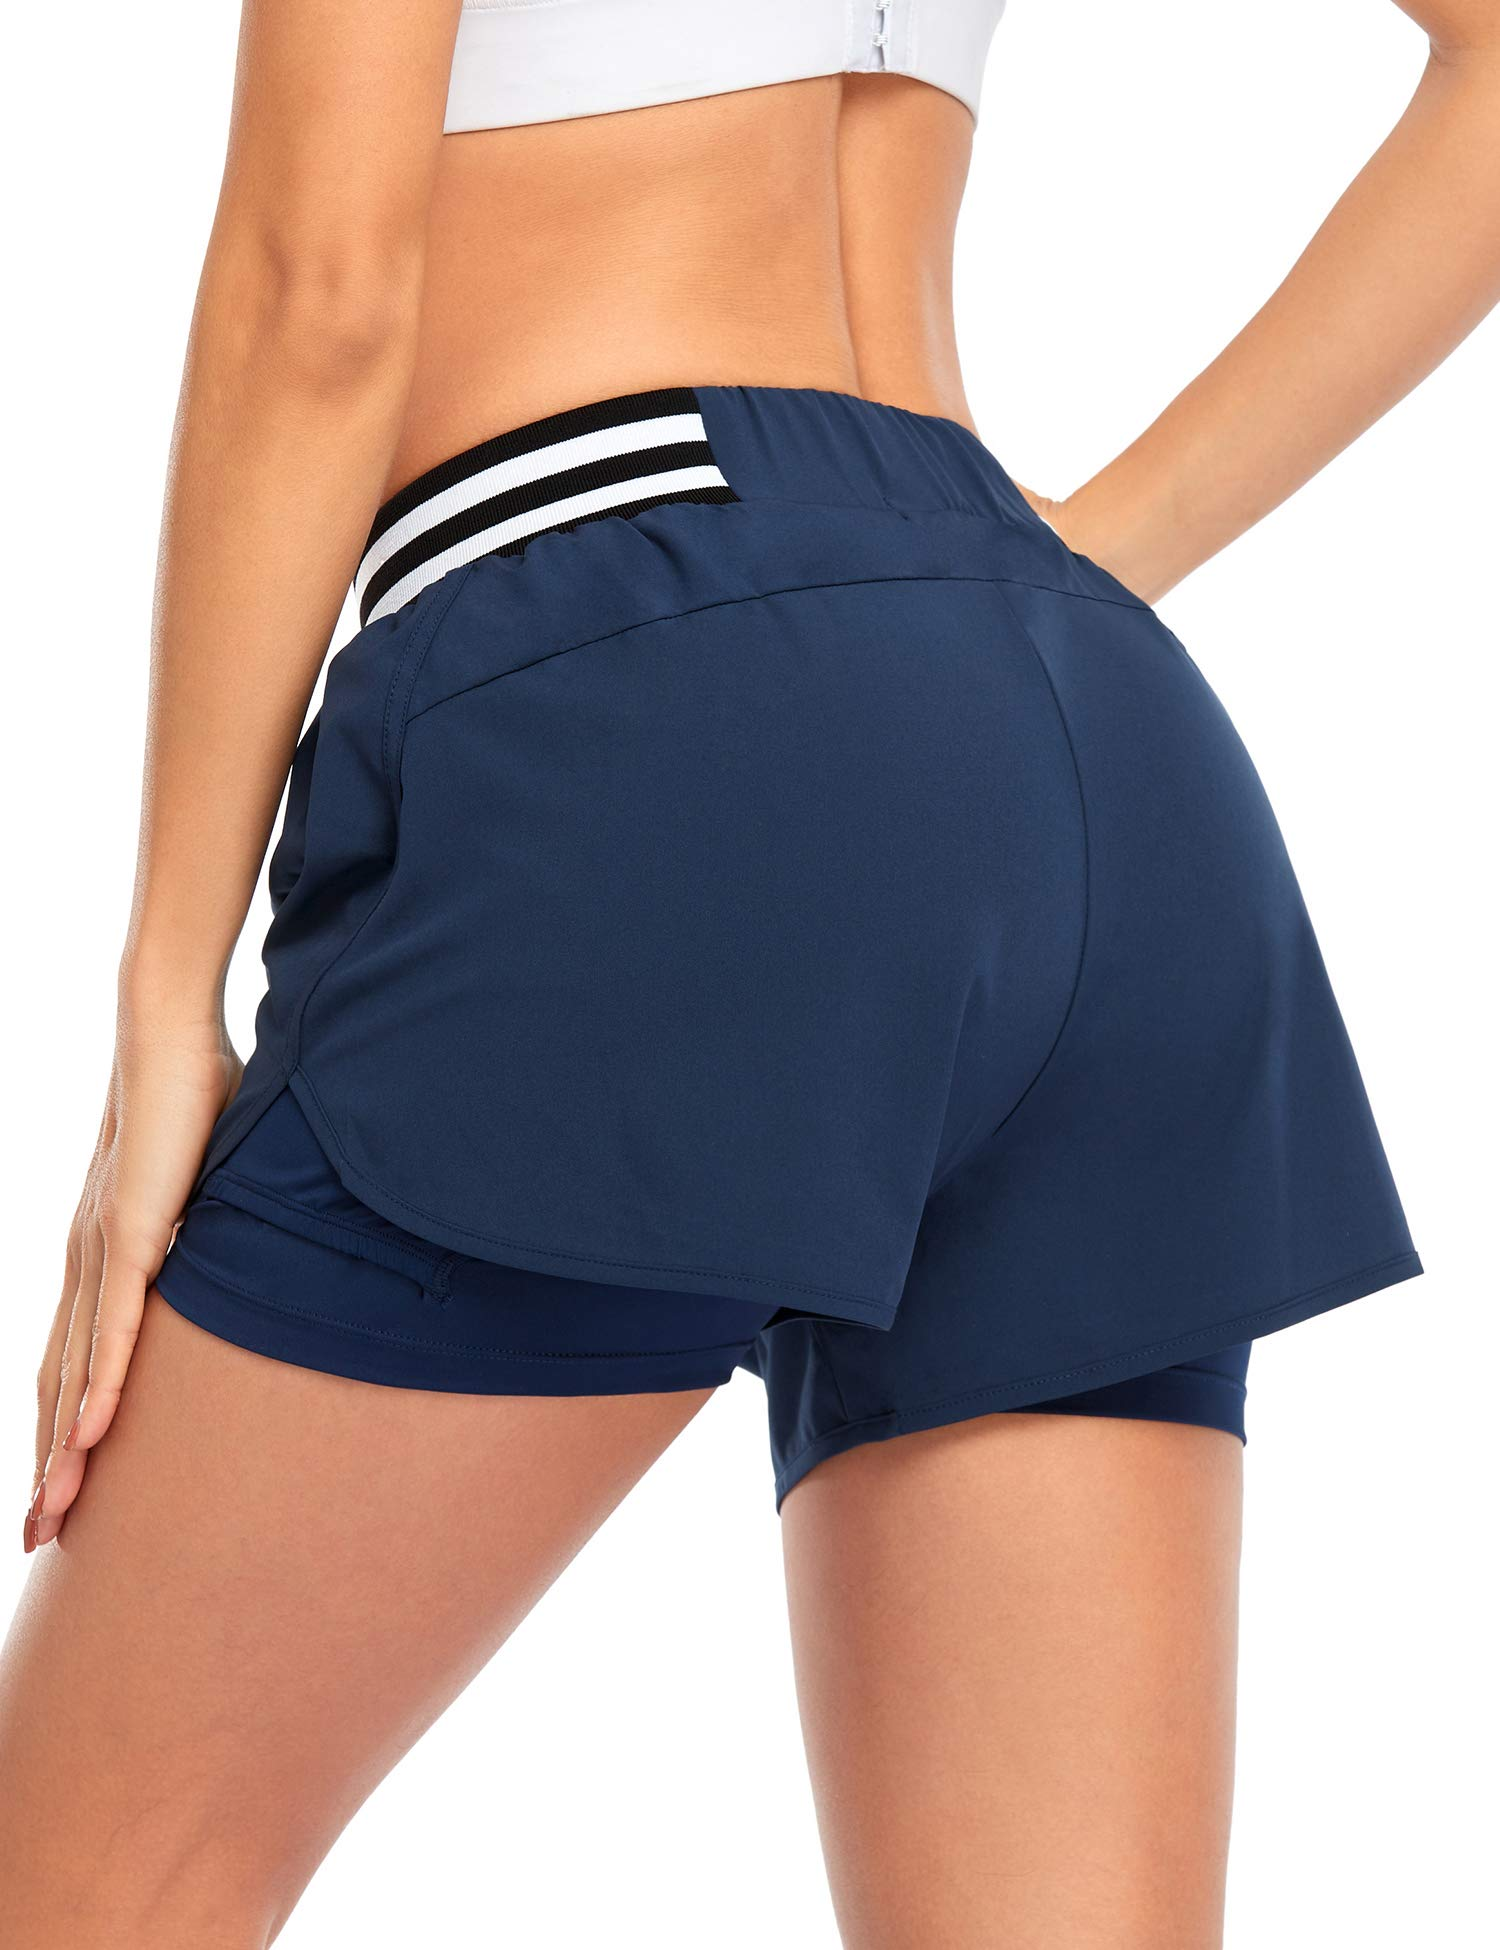 COOrun Tennis Shorts for Women 2 in 1 High Waisted Athletic Running Golf Shorts with Ball Pocket - 3 inches